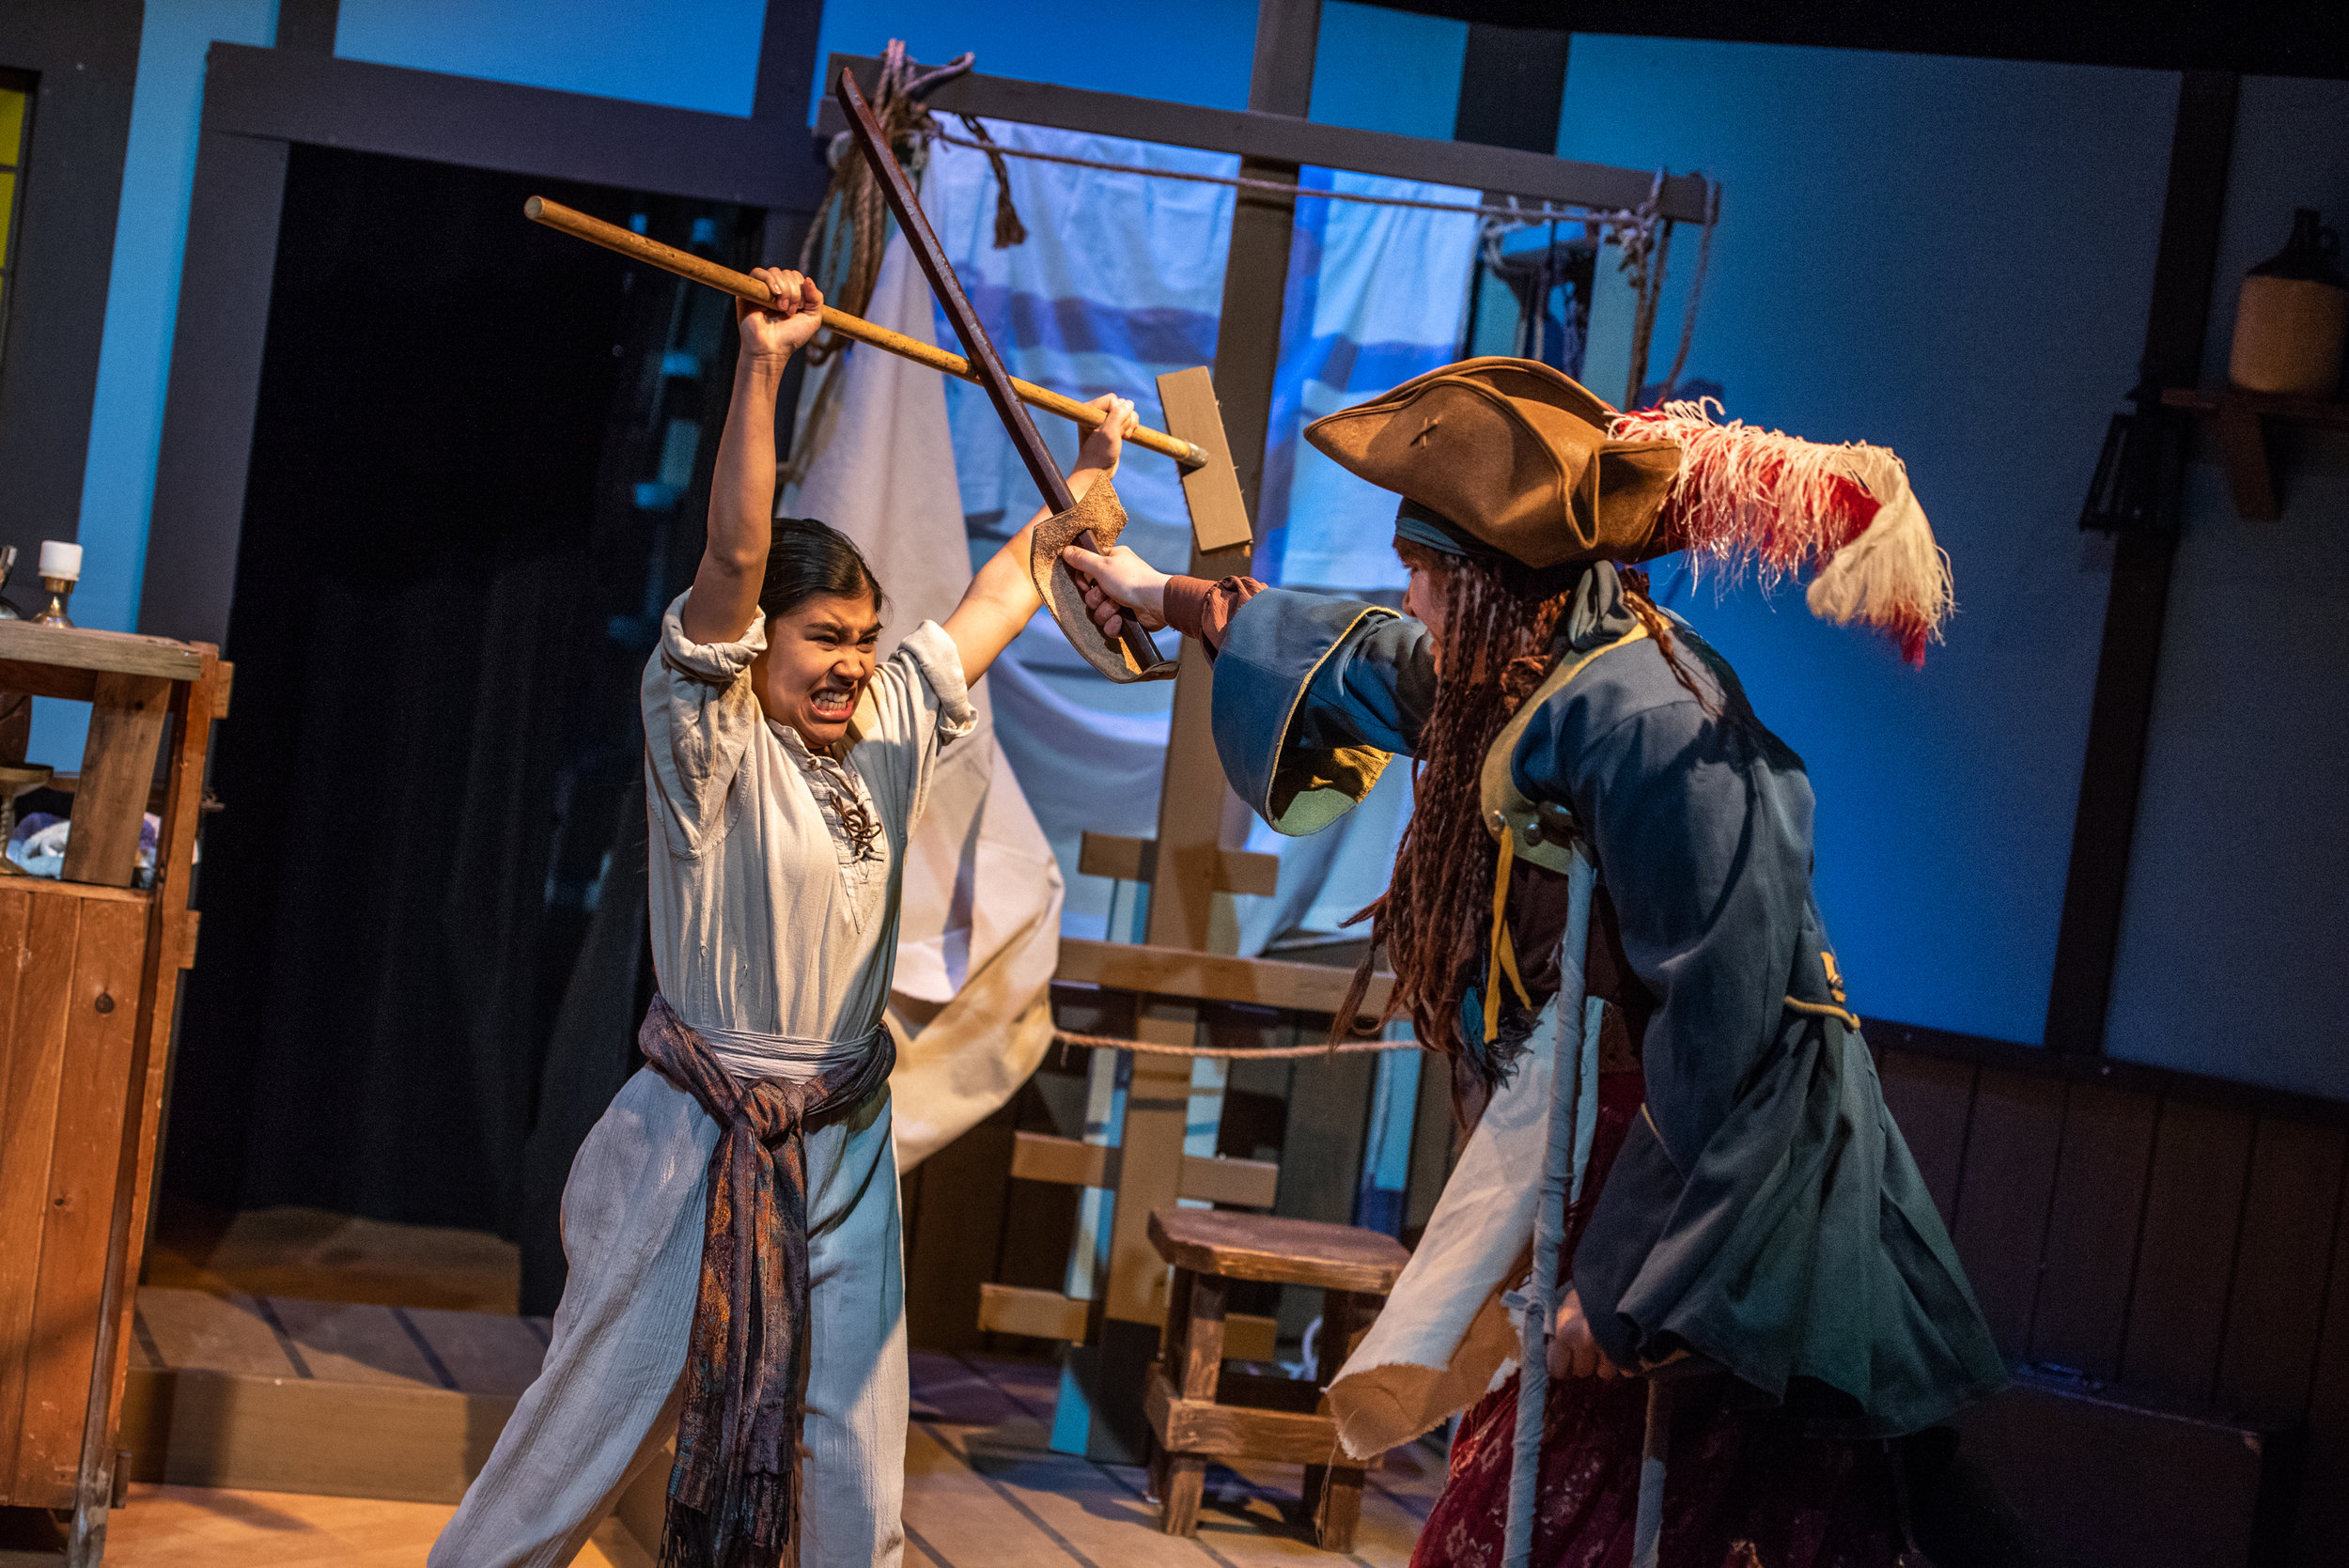 TreasureIsland2018-photobyDahliaKatz-9729.jpg